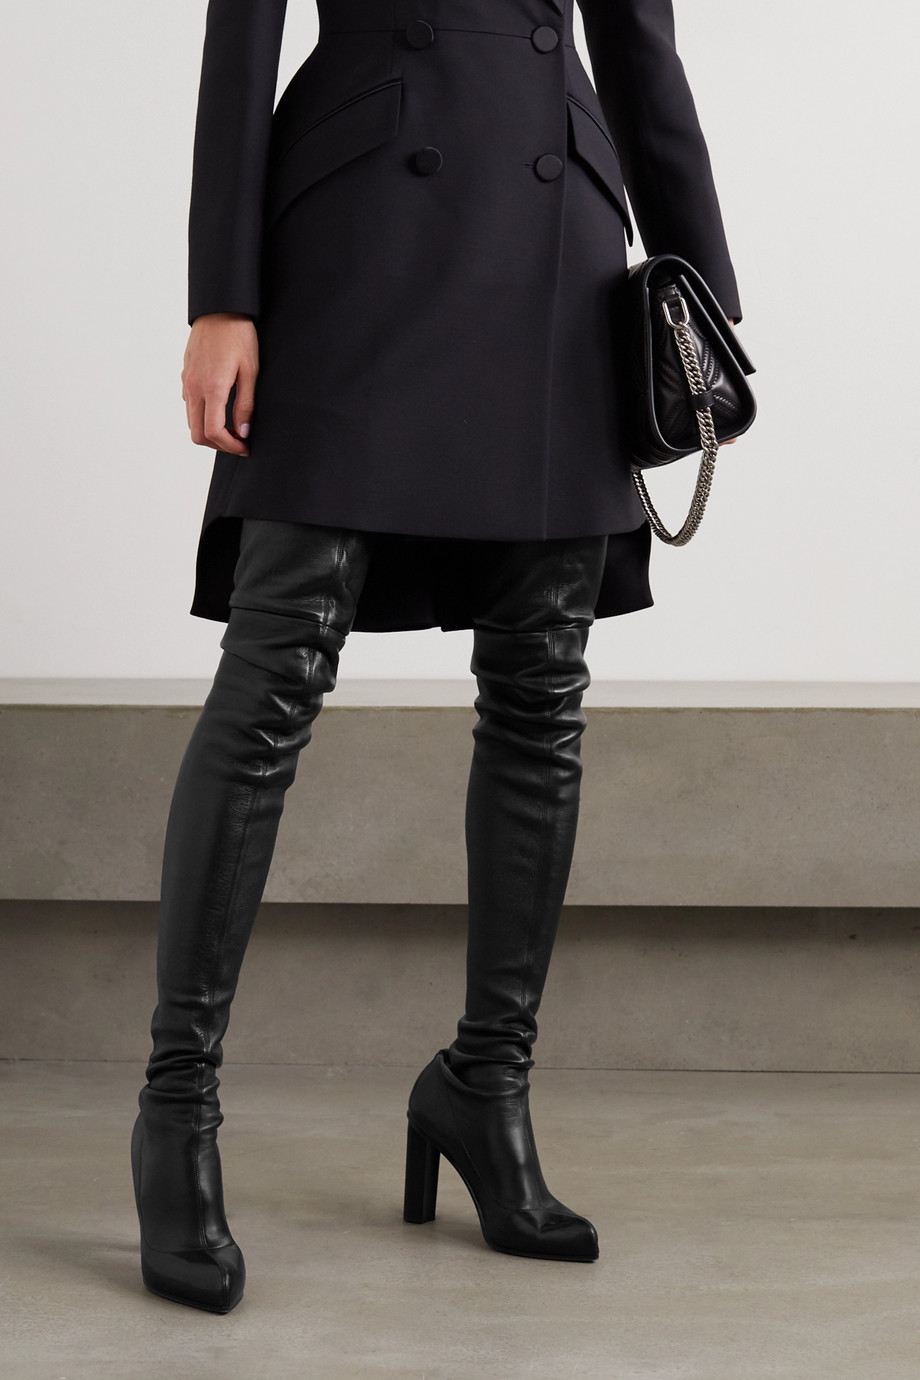 Alexander McQueen Leather over-the-knee boots